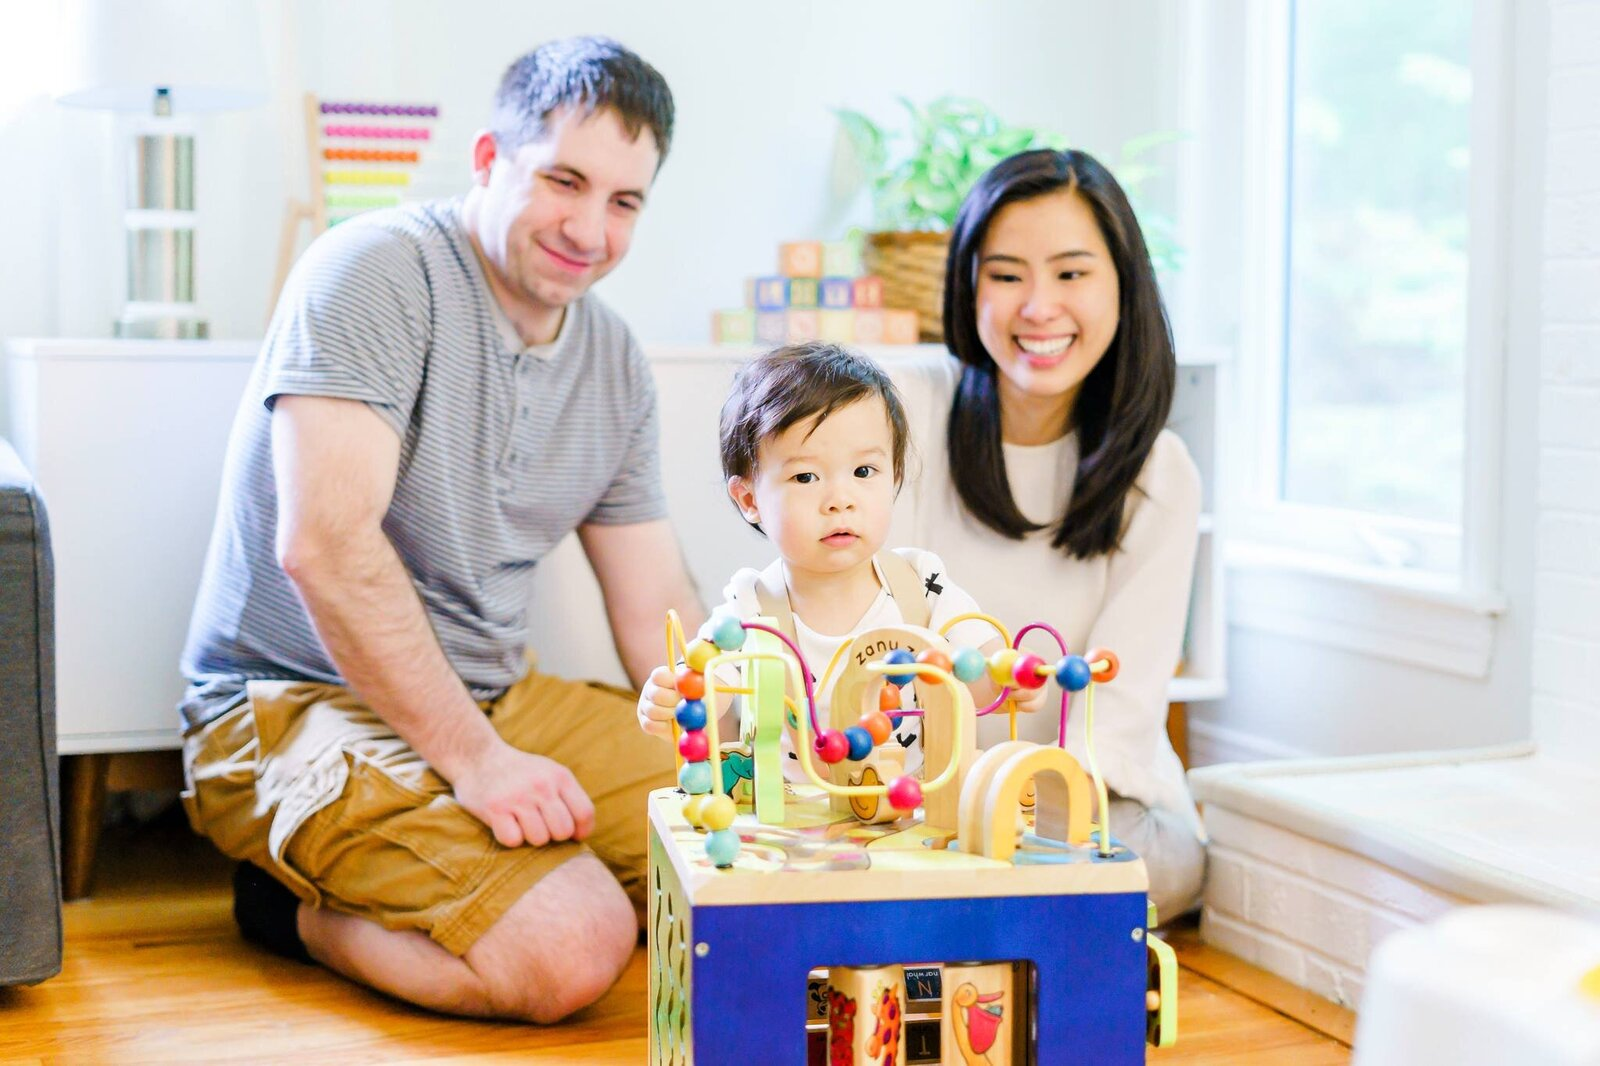 New England area family with baby playing with toys